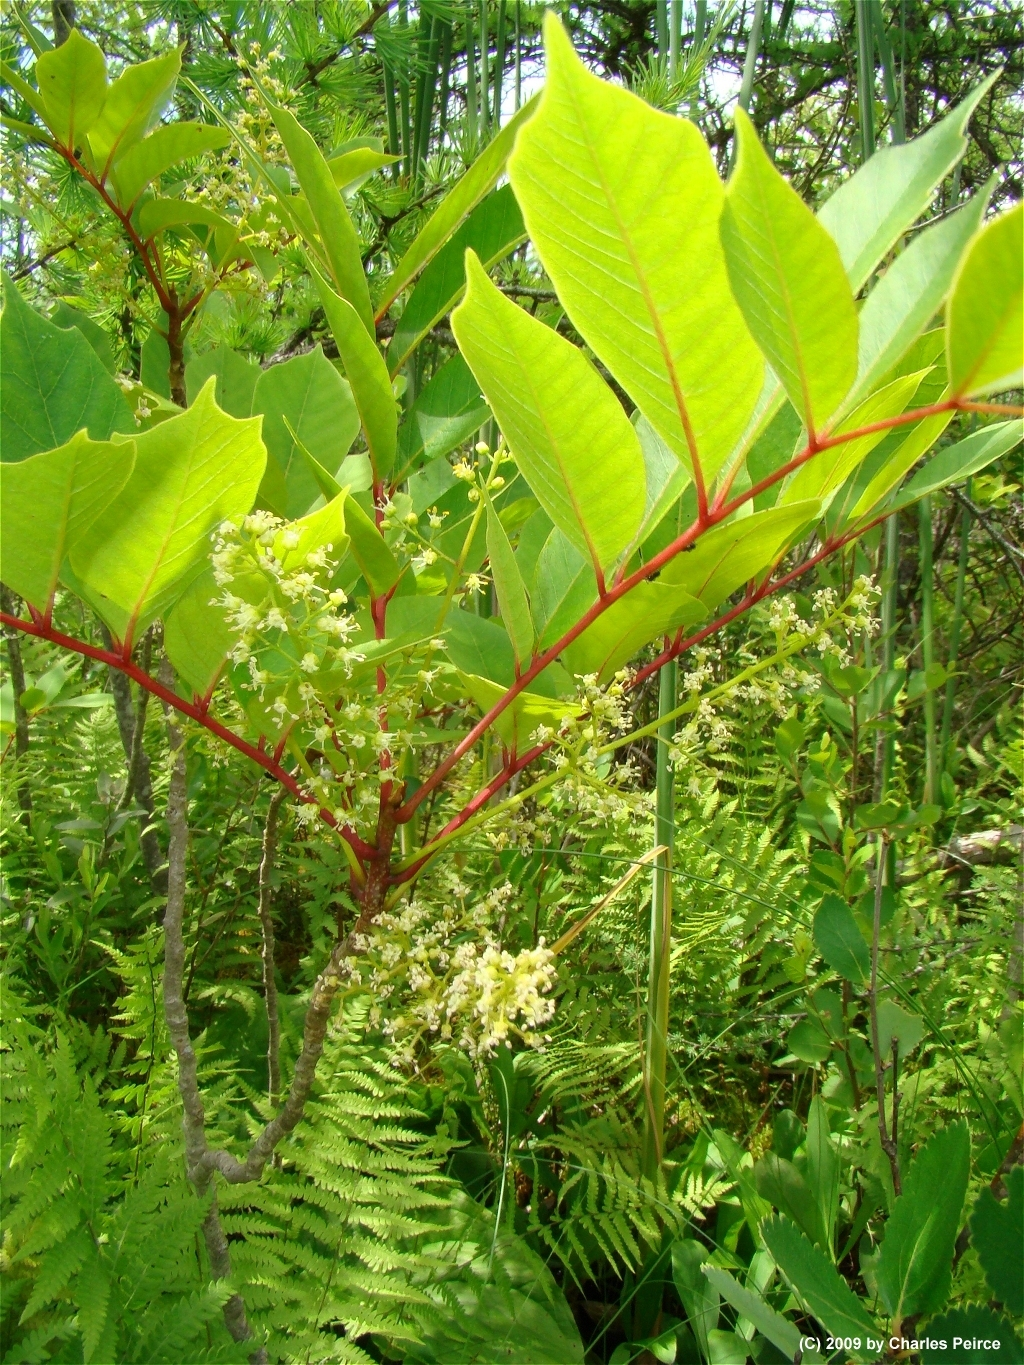 3 Easy Ways to Identify Poison Sumac (with Pictures)